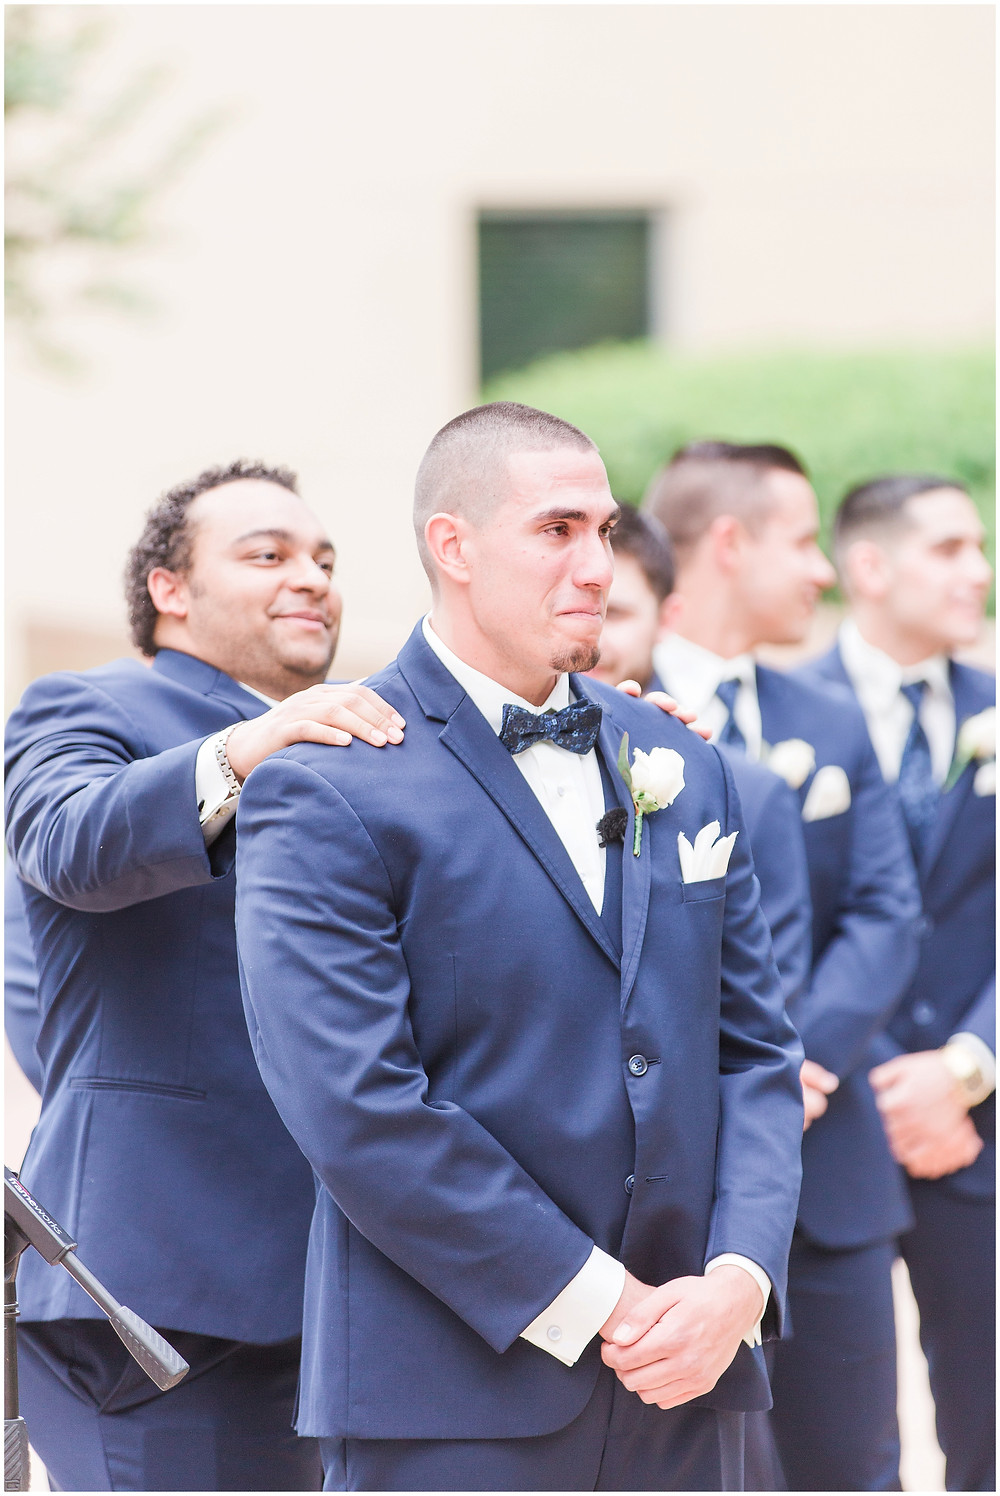 Grooms reaction to bride walking down the aisle.